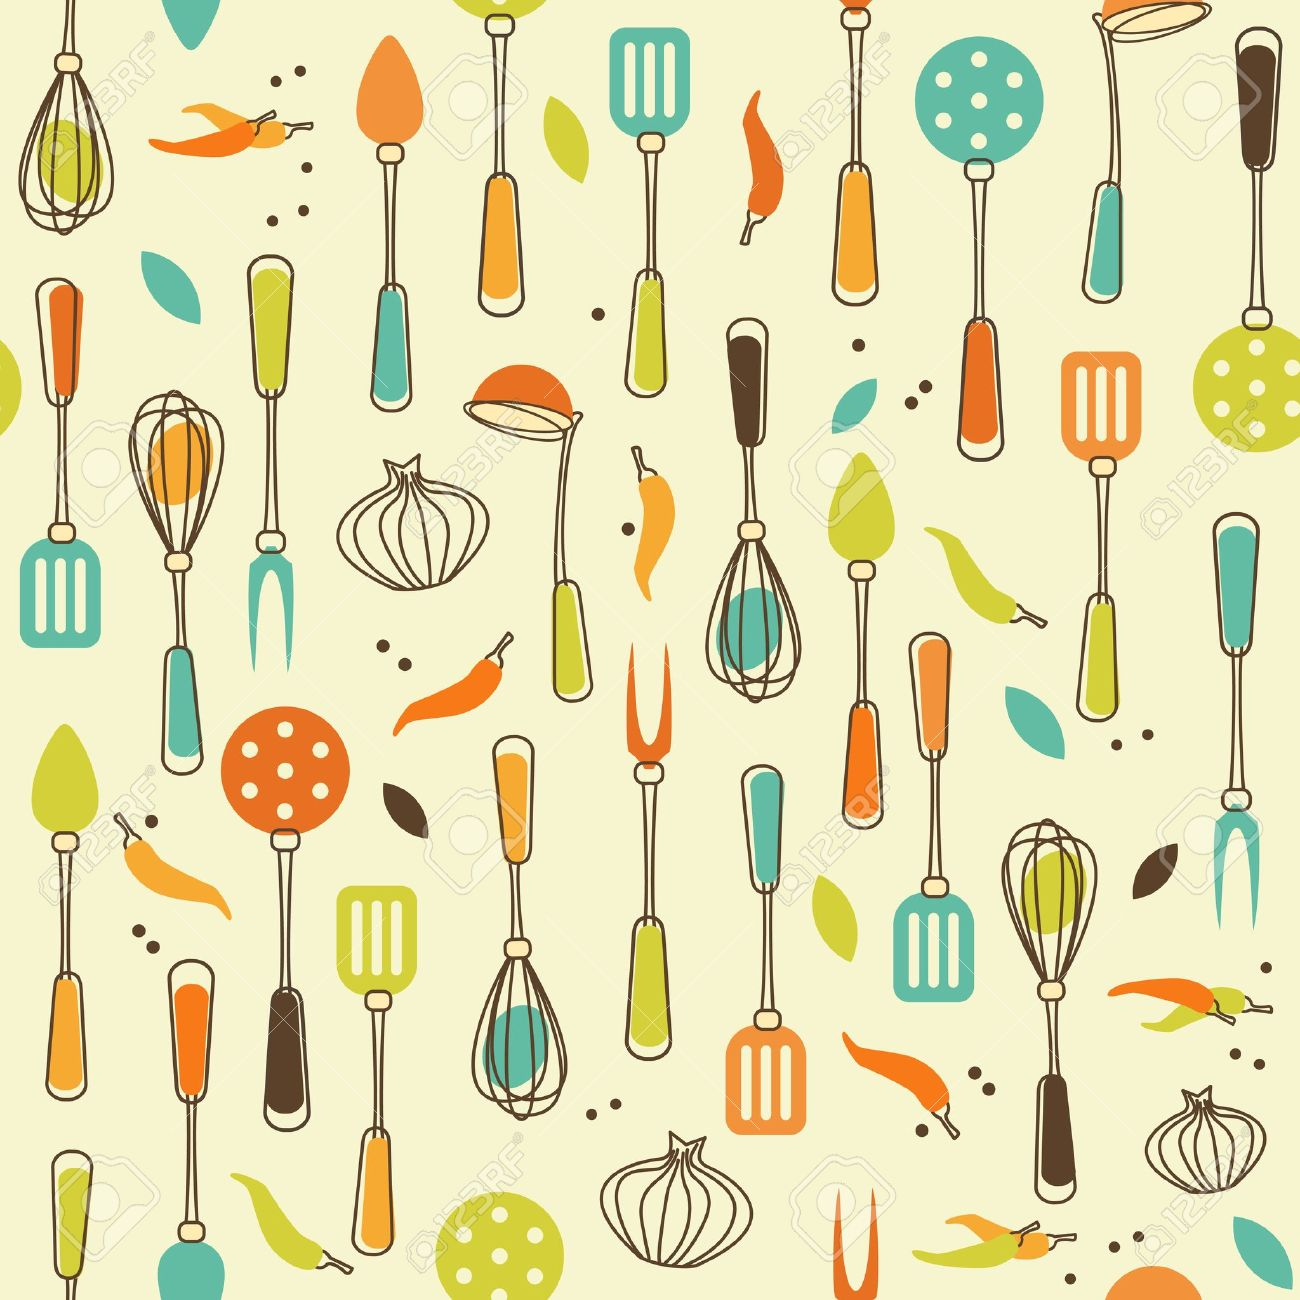 Kitchen wallpaper retro - Seamless Pattern Of Kitchen Utensil In Retro Styled Stock Vector 15493662